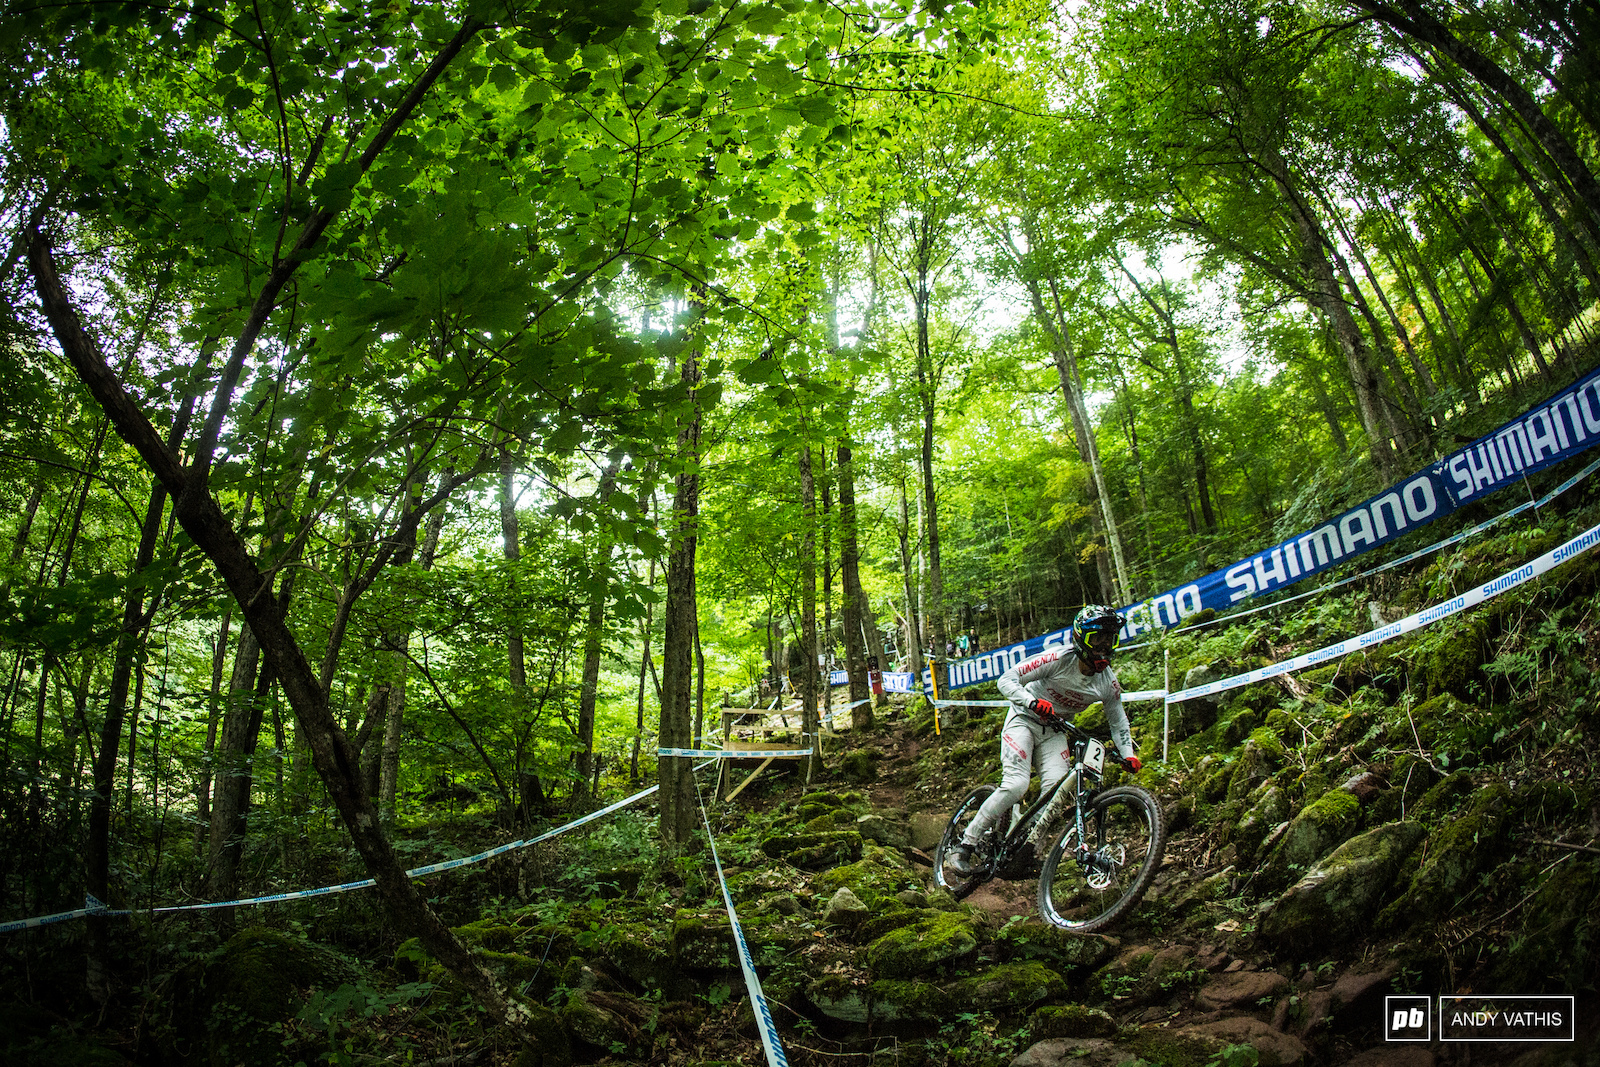 Amaury Pierron deep in the foliage. Hopefully for him the split times stay just as green.